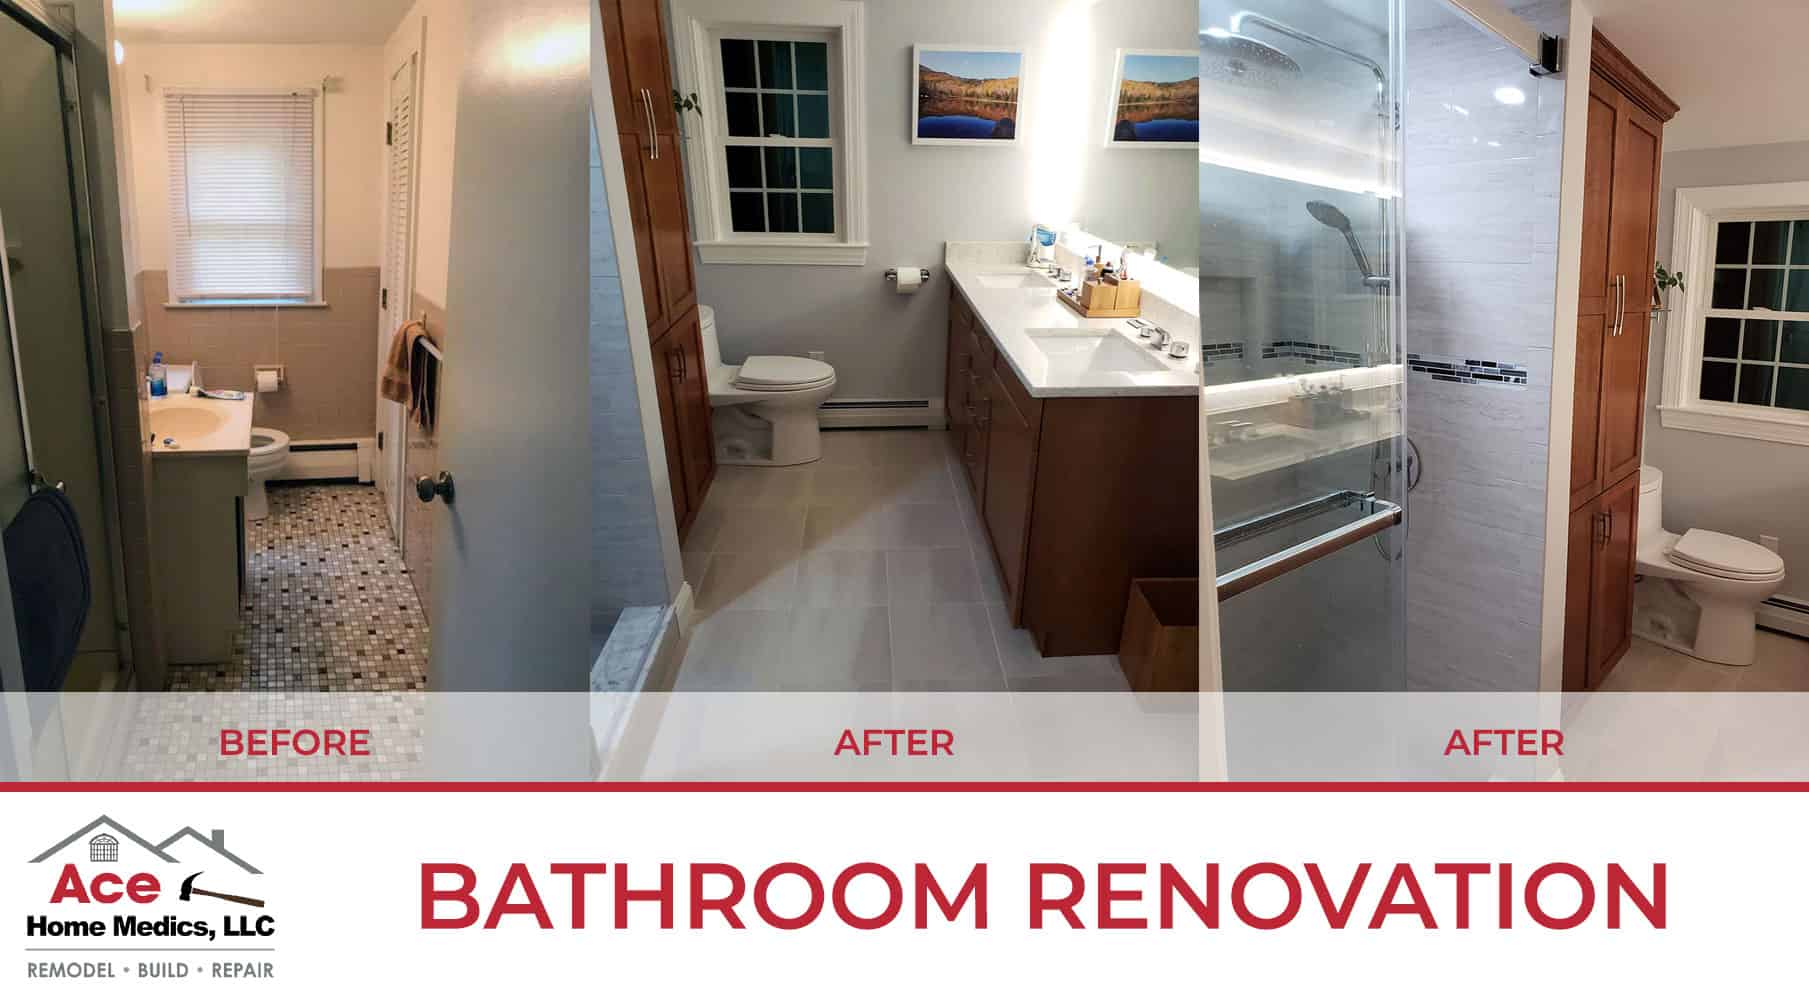 Bathroom Remodeling & Renovations by ACE